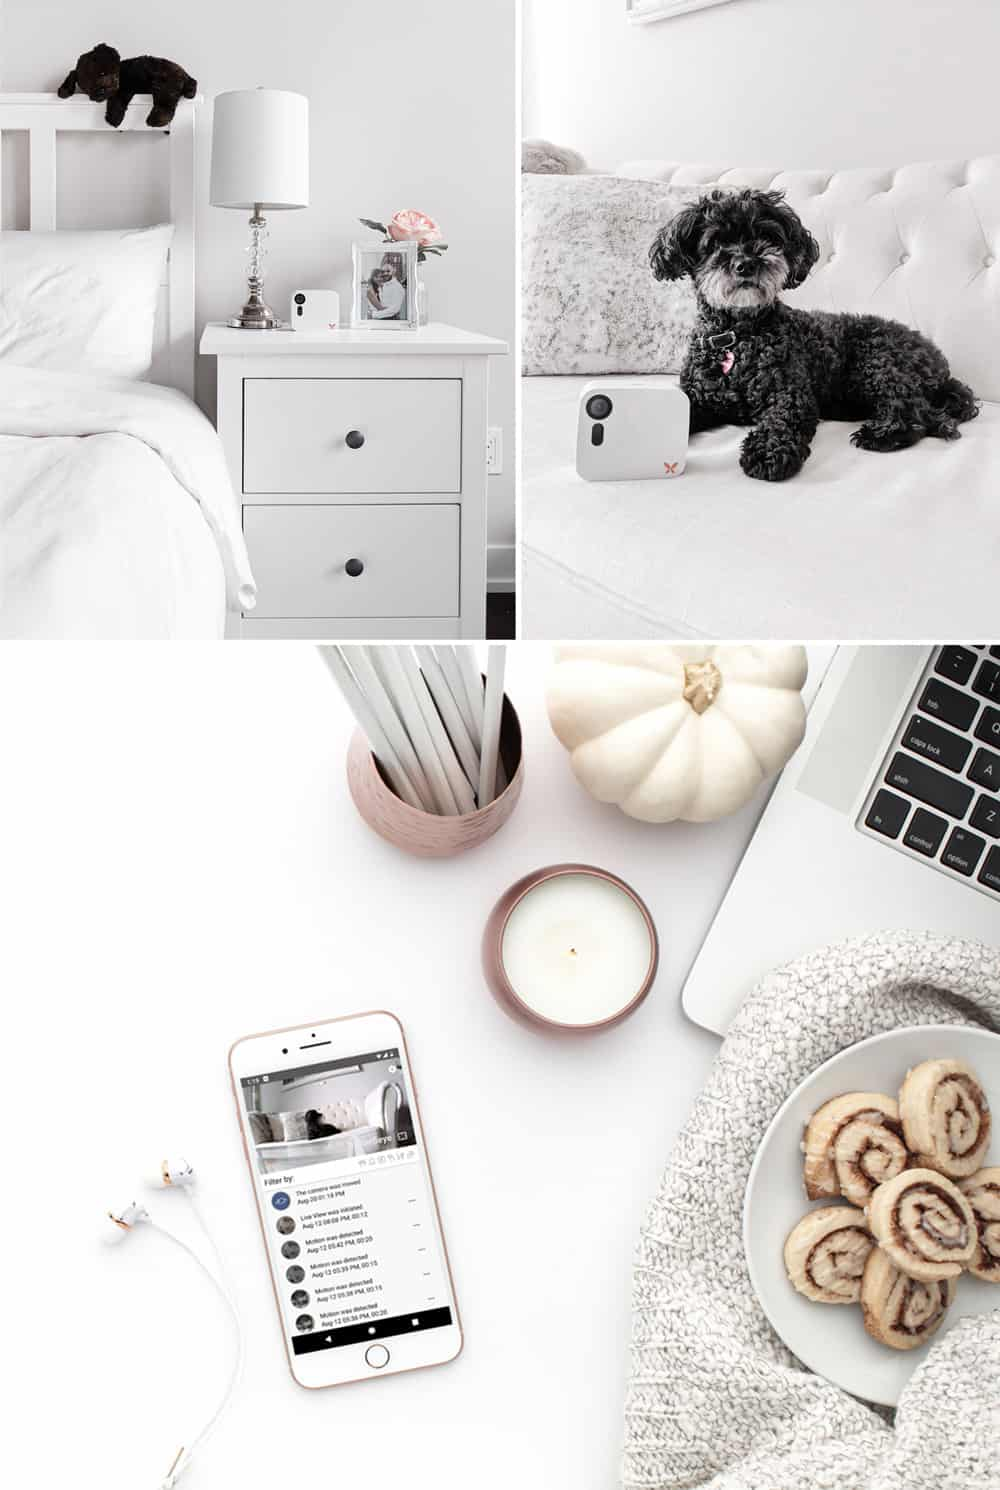 Keeping your home and pets safe is easy with the Ooma Butterfleye smart camera and dog camera..